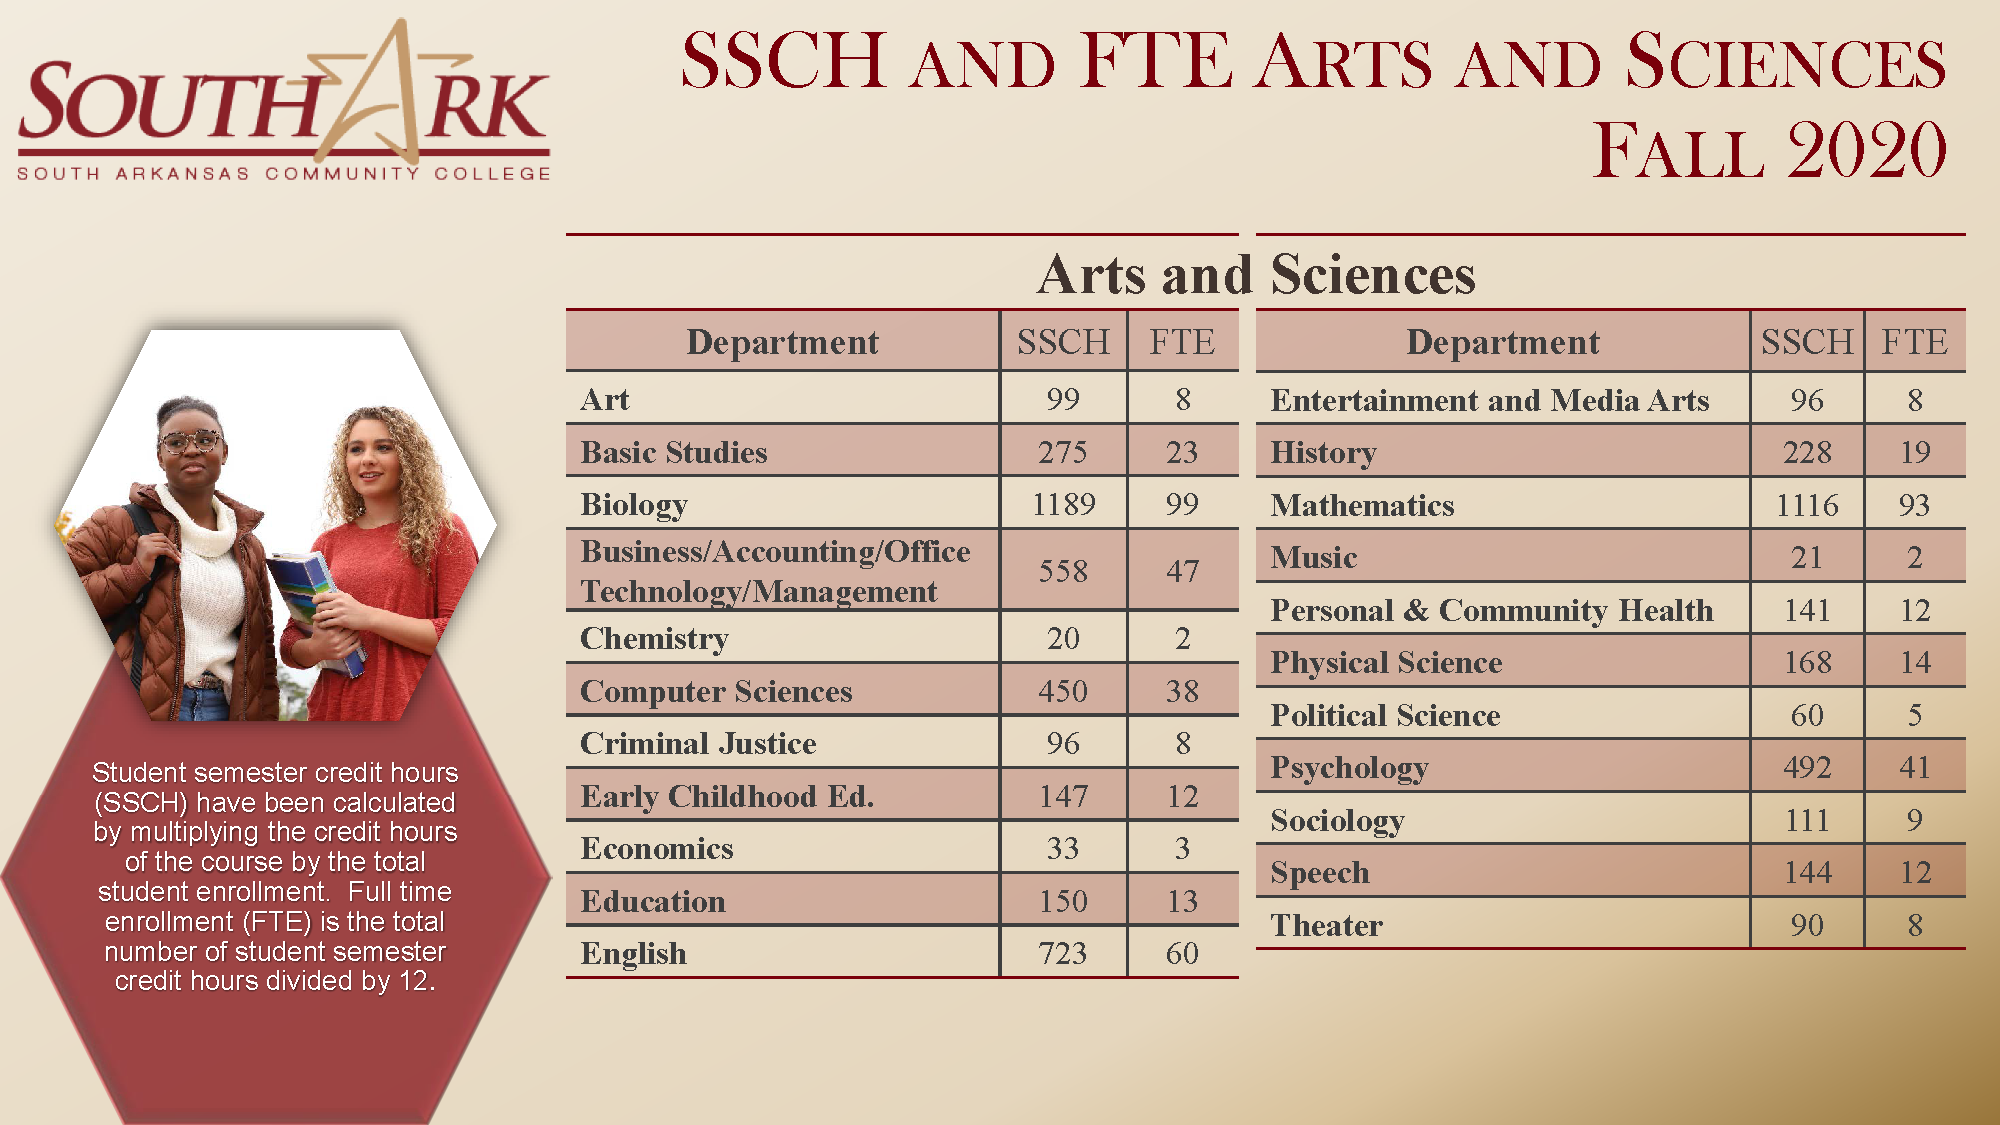 SSCH FTE for ArtsSciences Fall 2020